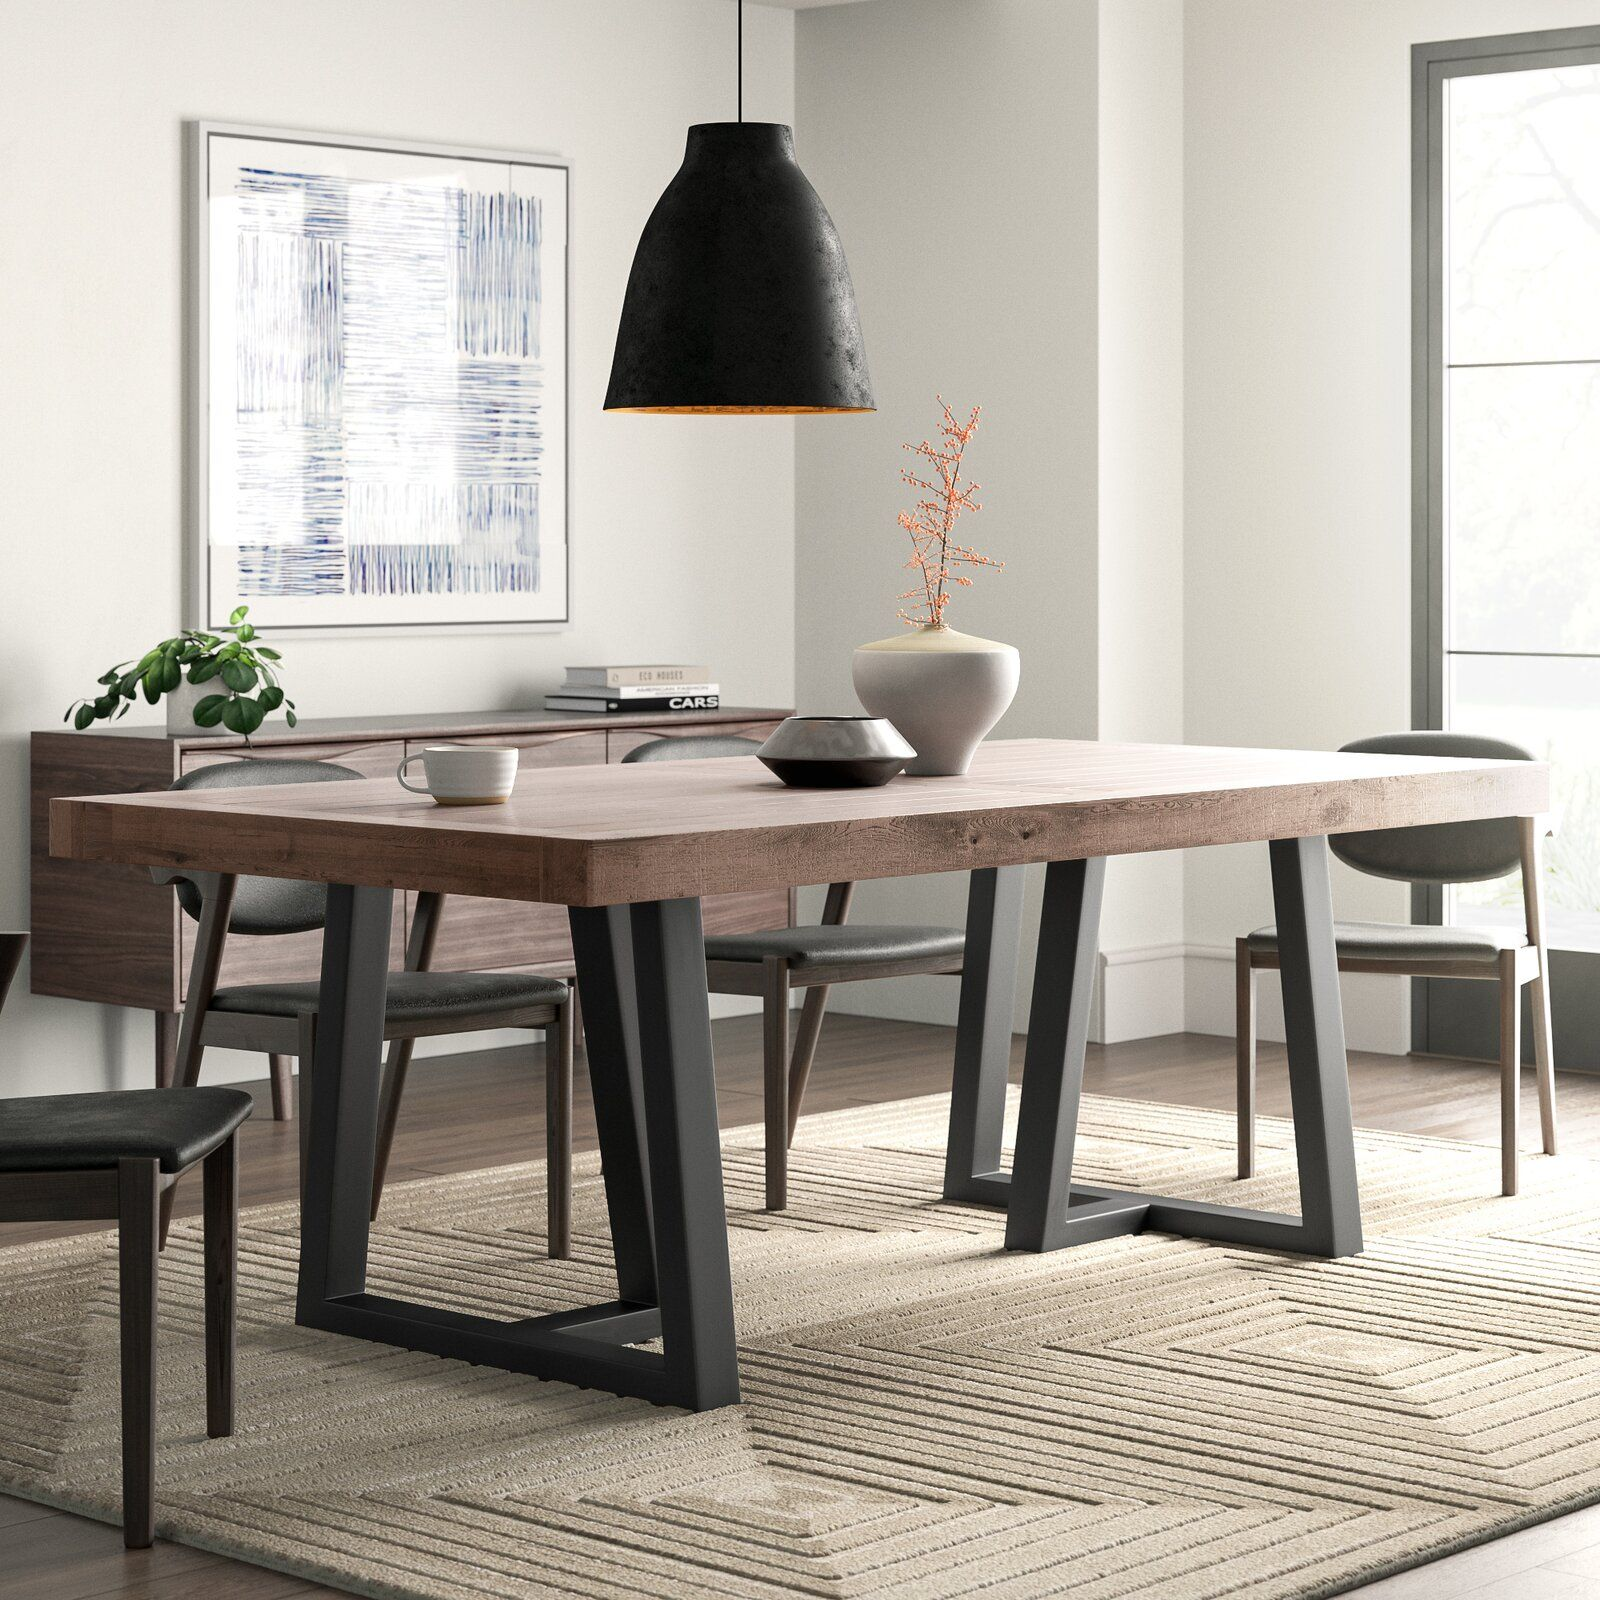 Foundstone Stephen Pine Solid Wood Dining Table Wayfair In 2020 Solid Wood Dining Table Modern Dining Room Wood Dining Table